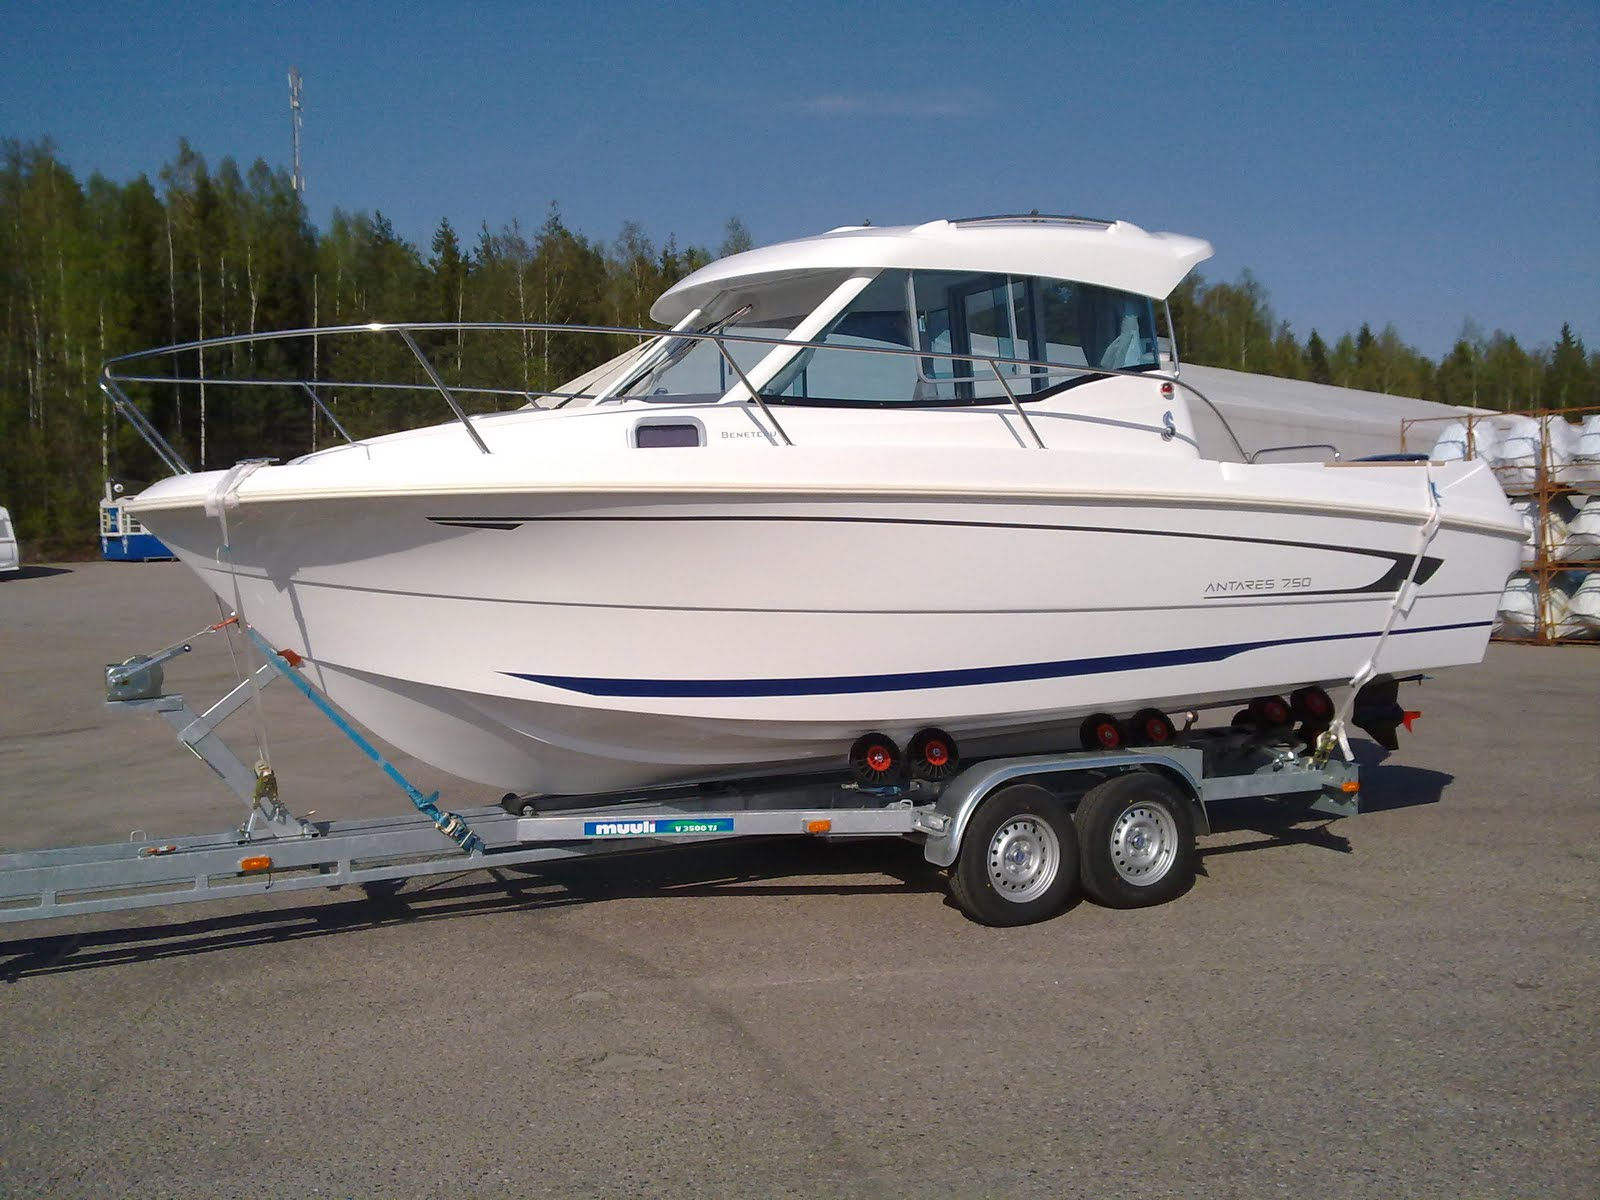 Lake saimaa fishing travels new charter fishing boat for Lake fishing boats